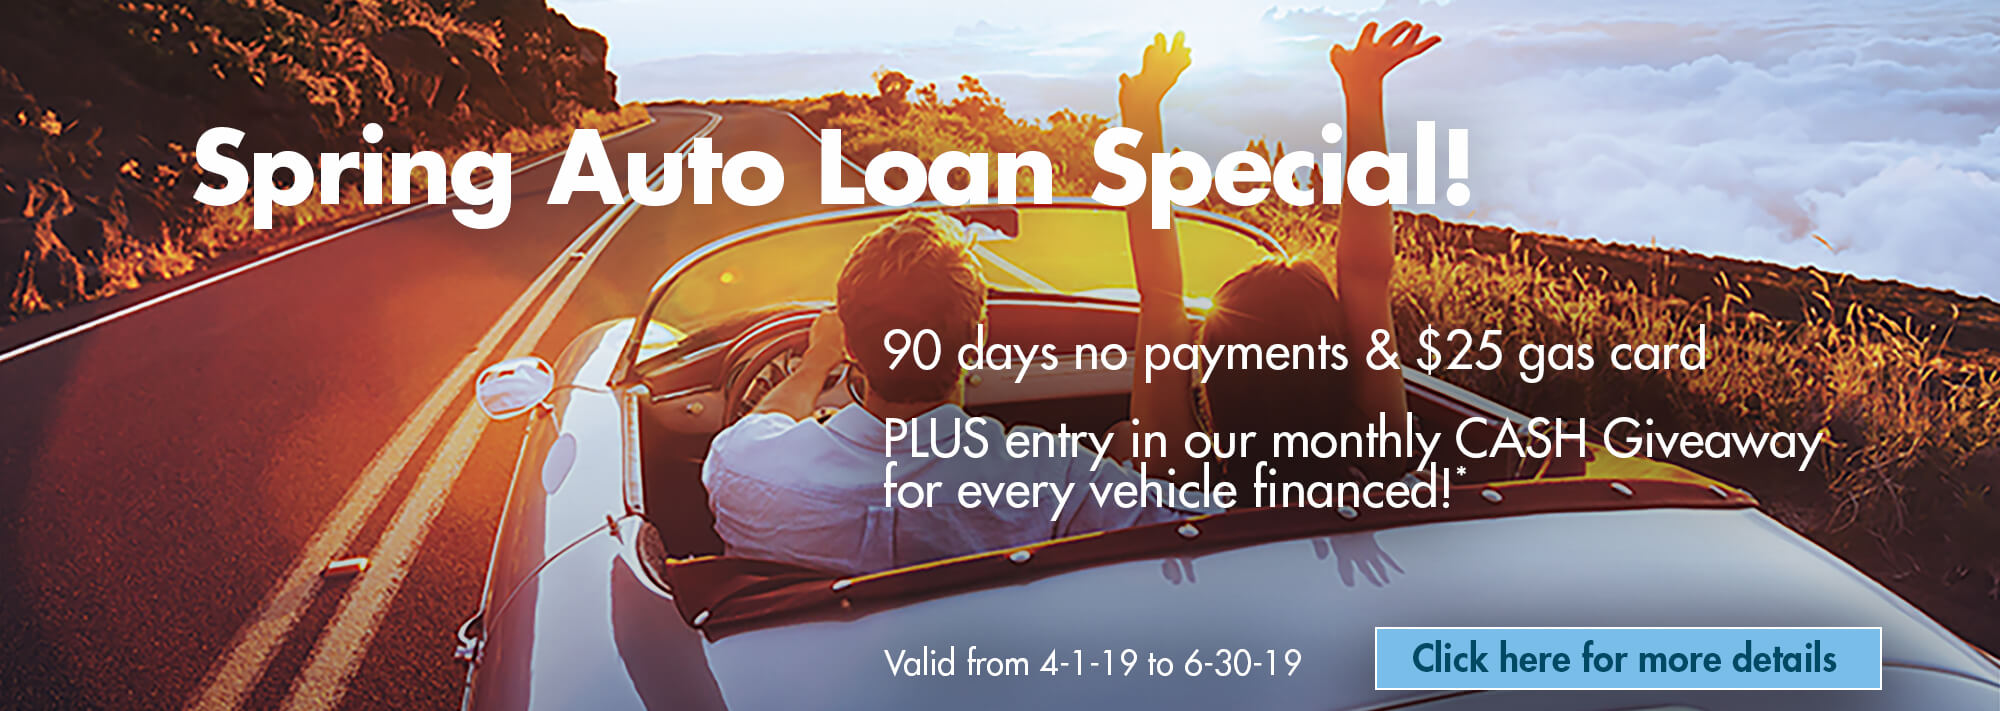 Spring Auto Loan Special